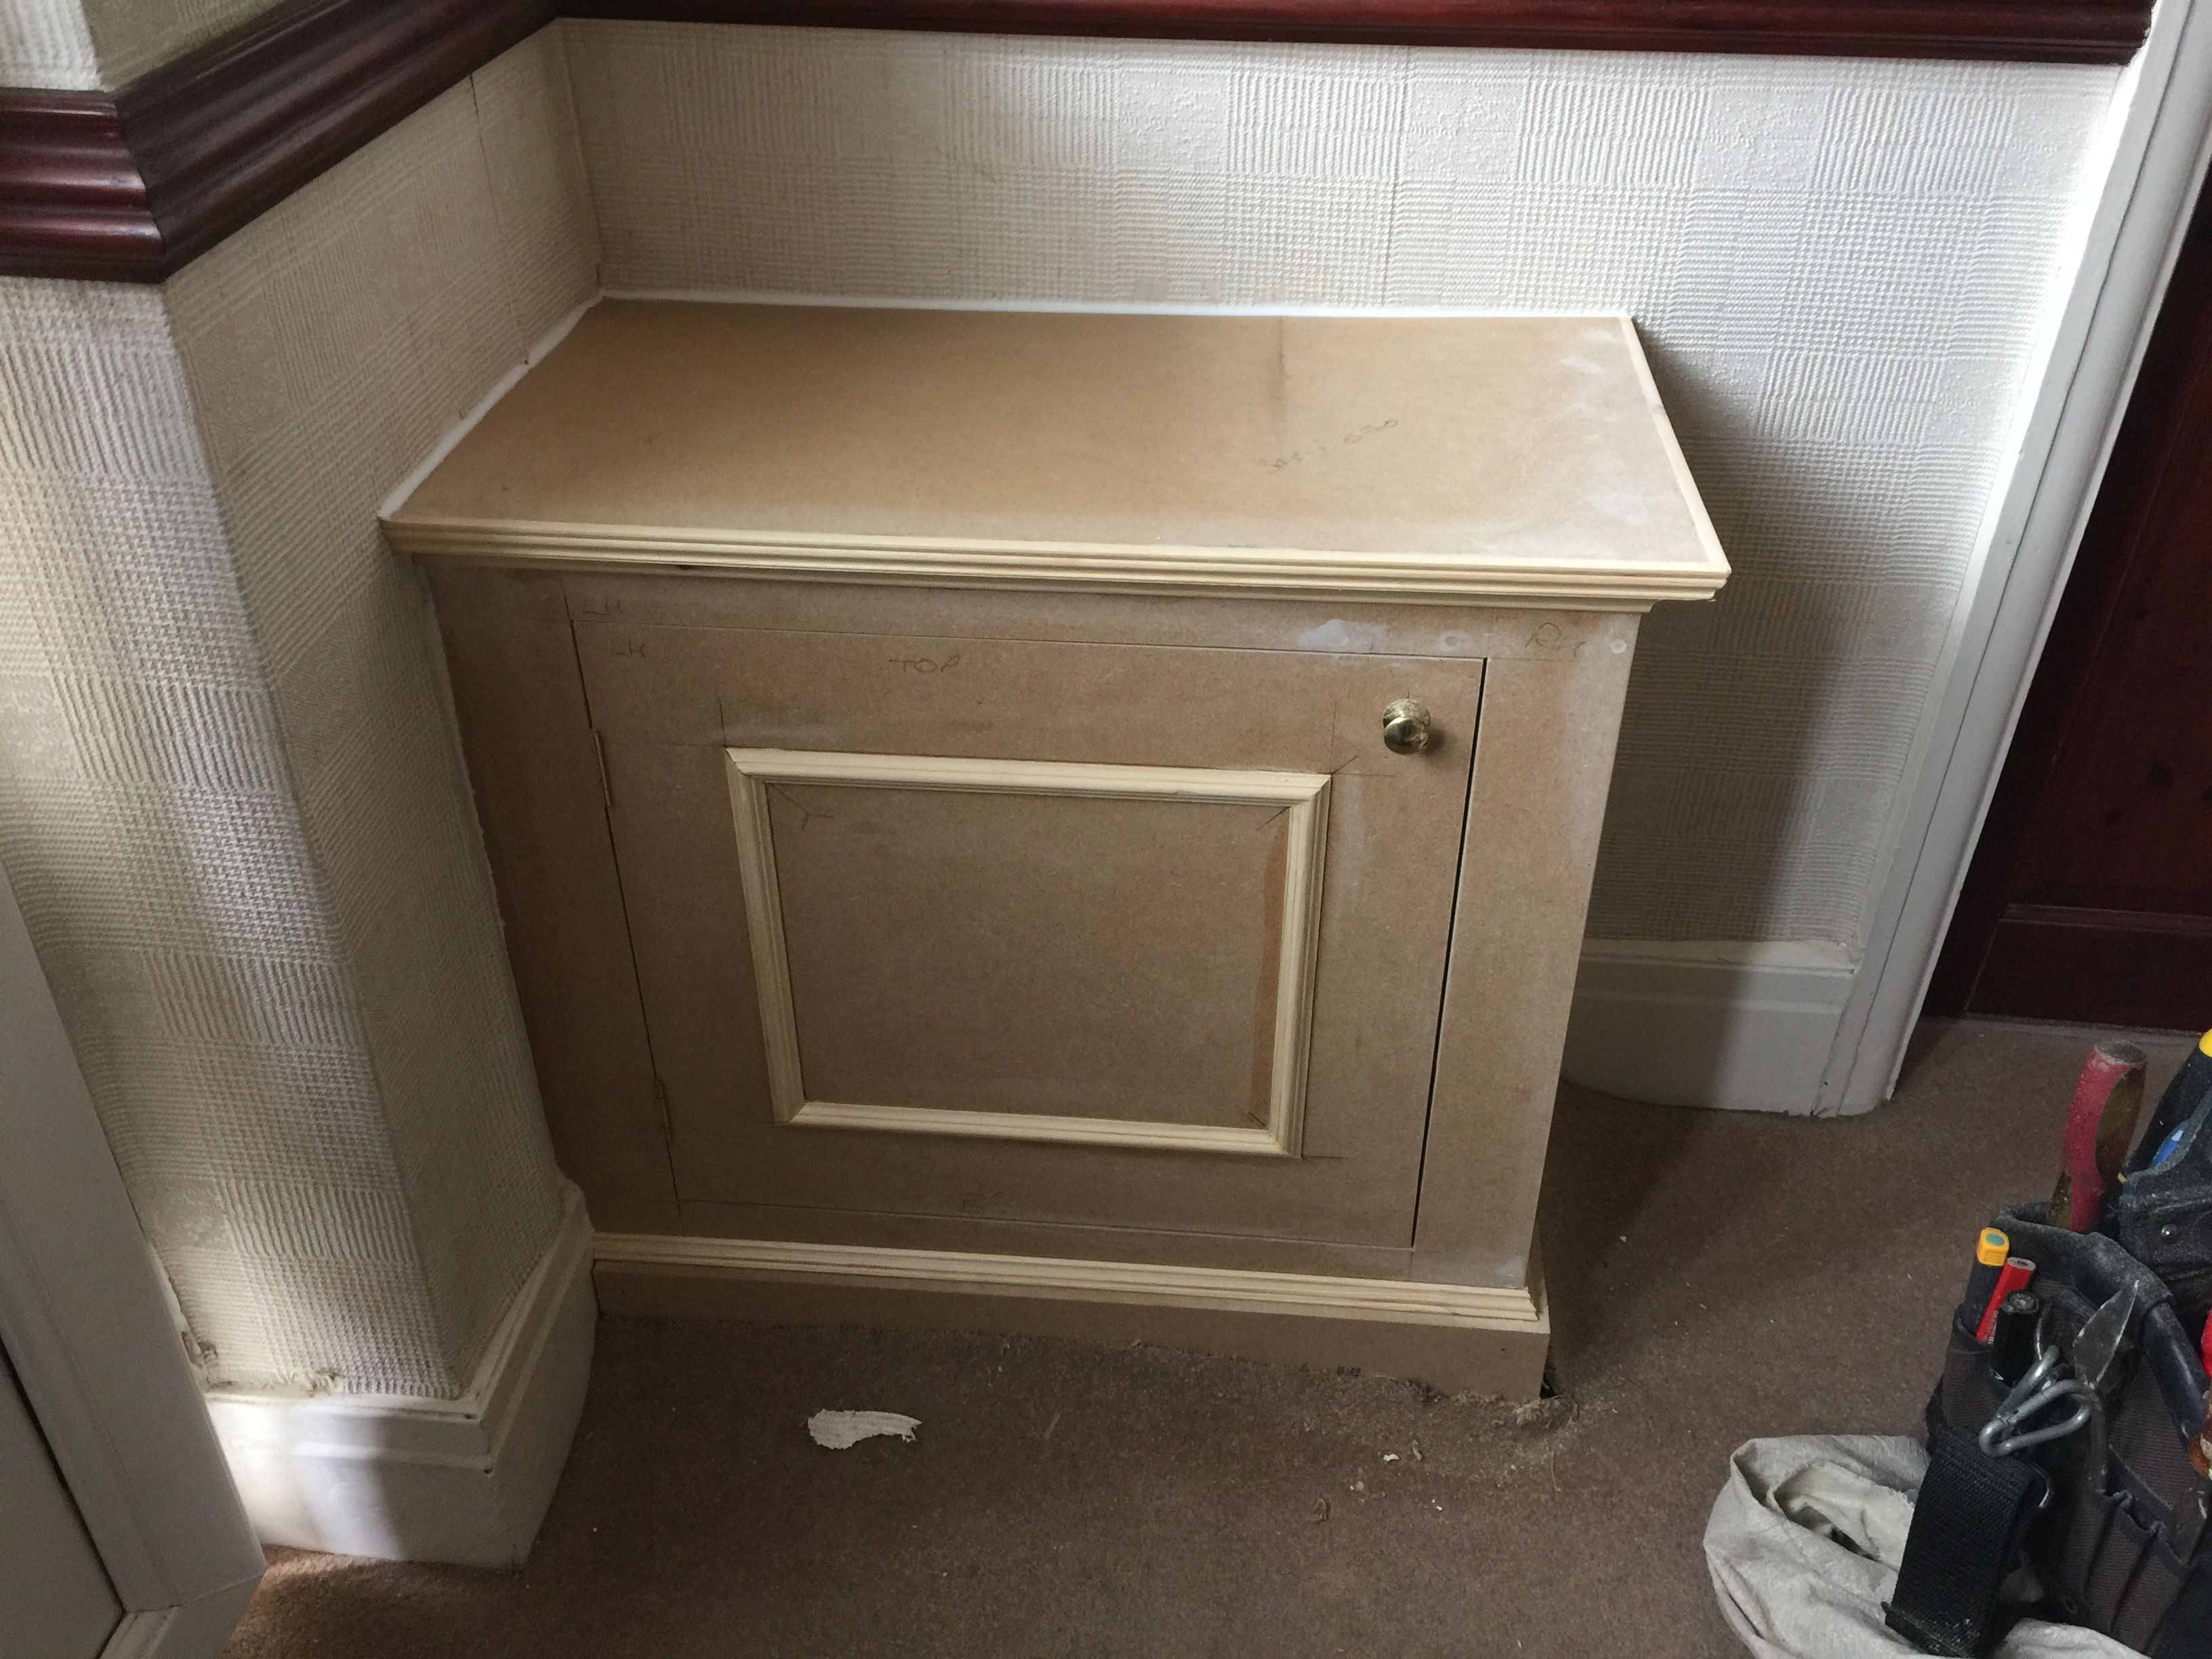 Gas Meter Cupboard Or Cabinet In Hallway Made By Joinery And Cabinet